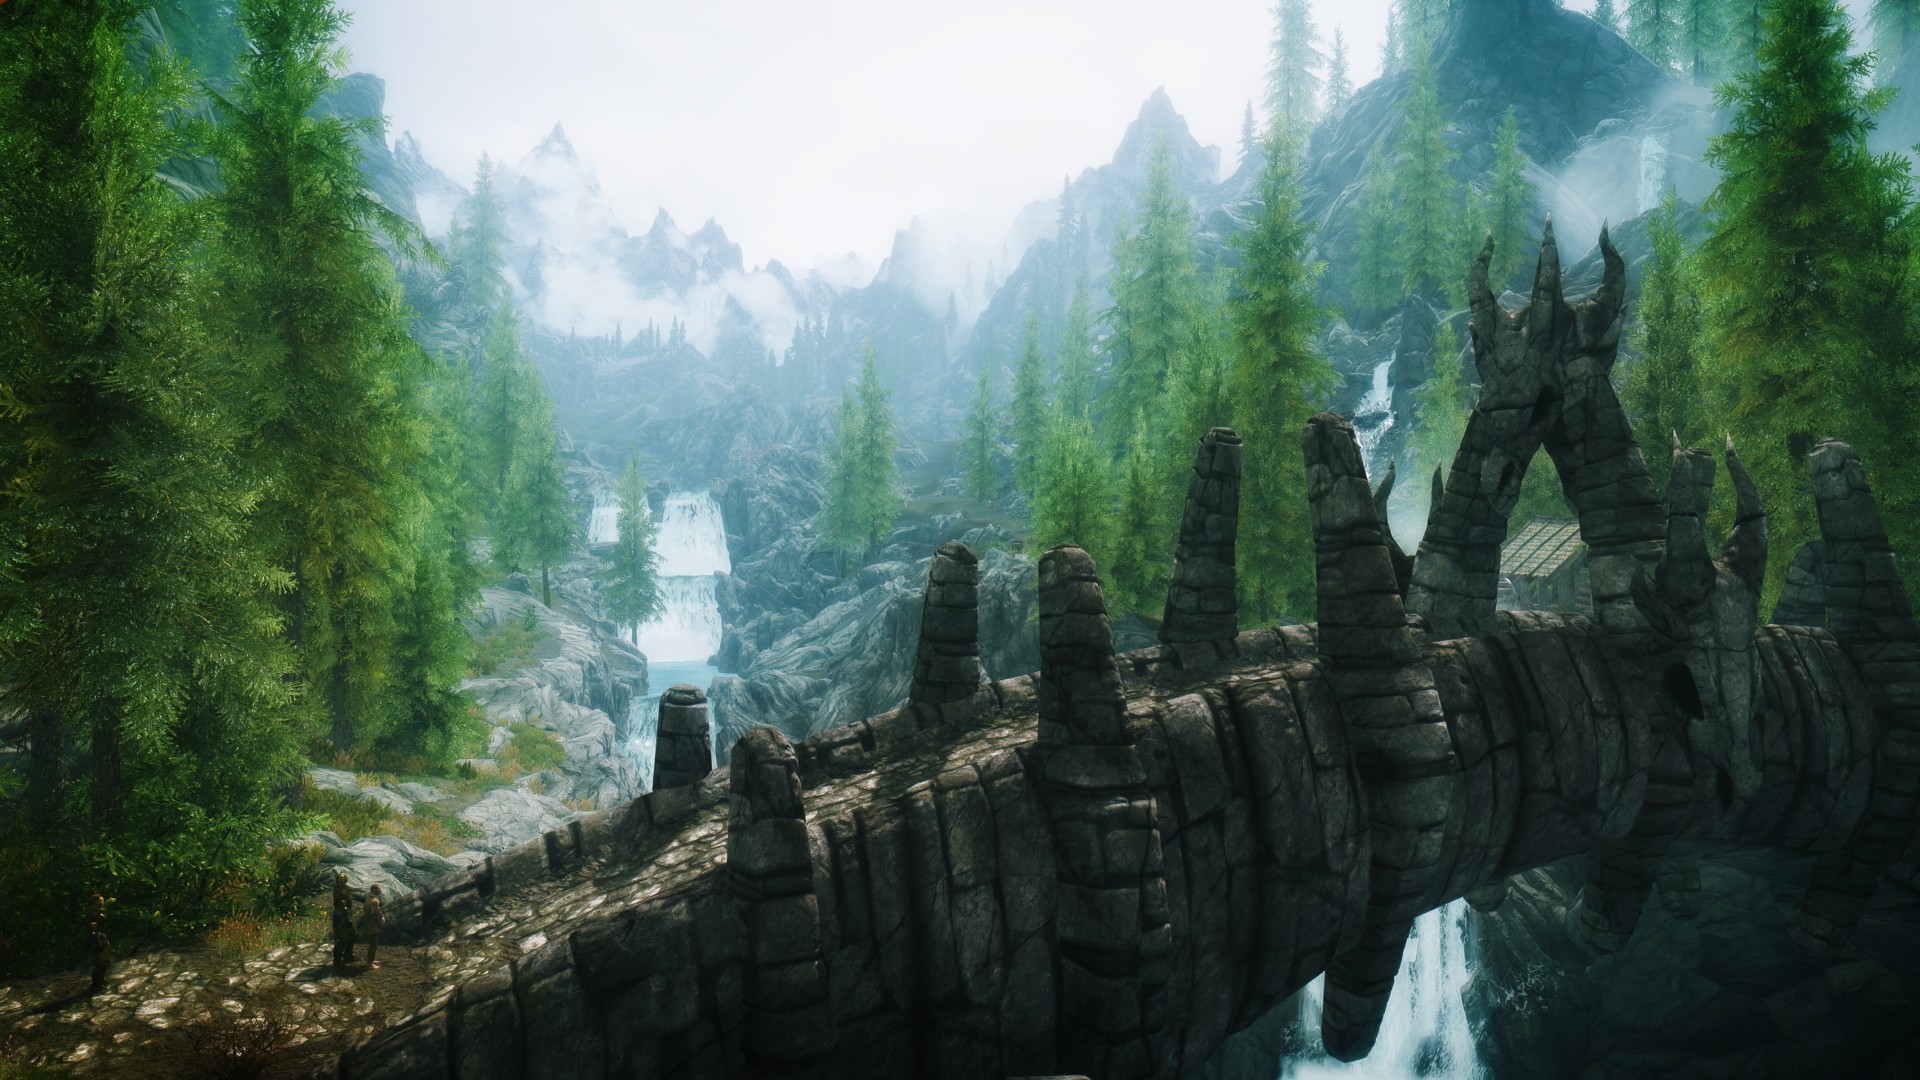 Skyrim Wallpaper HD 79 images